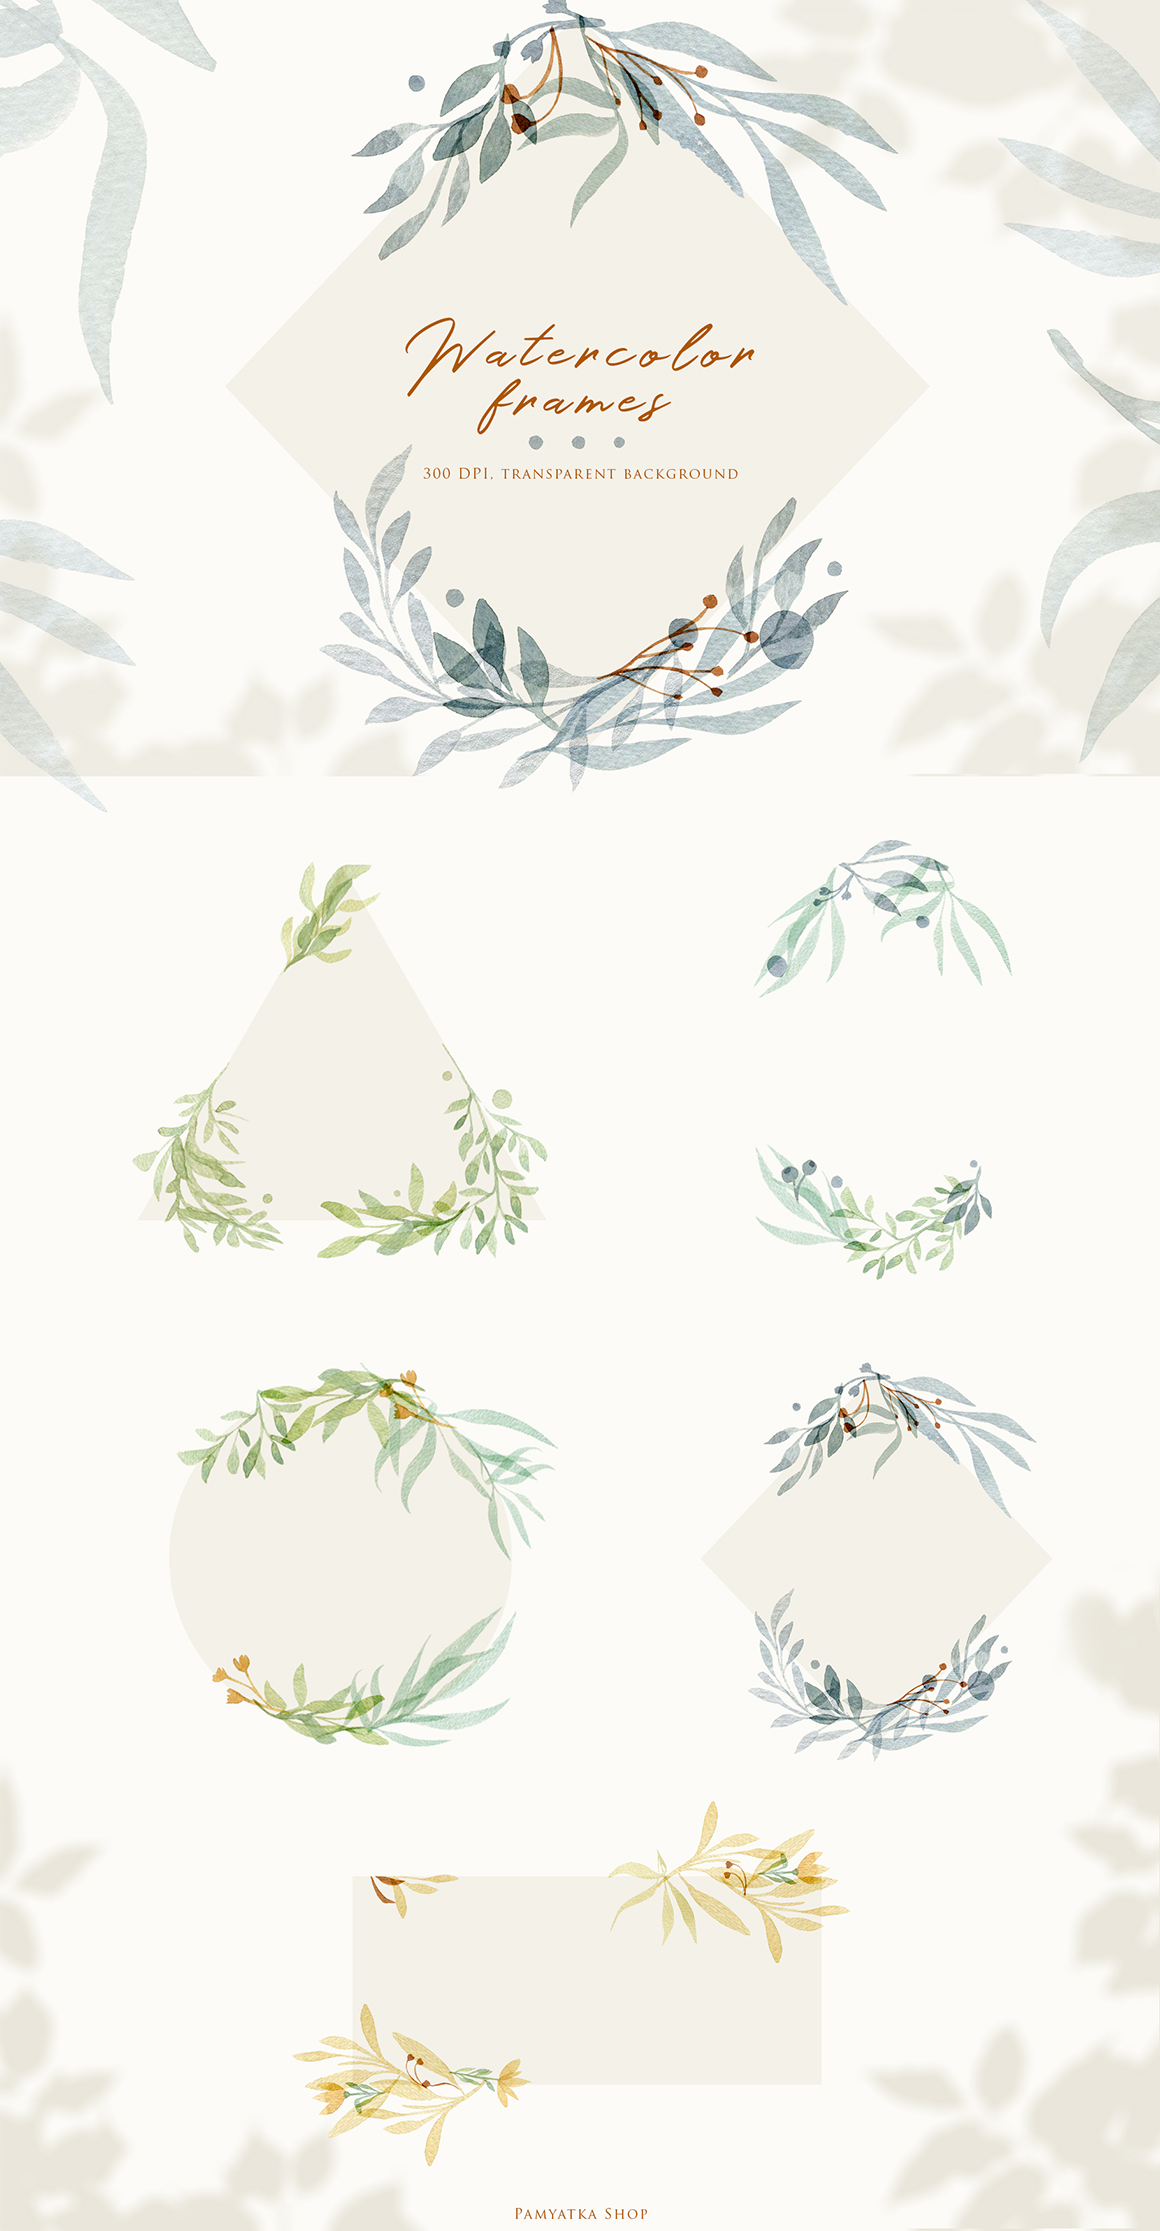 Minimalistic Watercolor Leaves